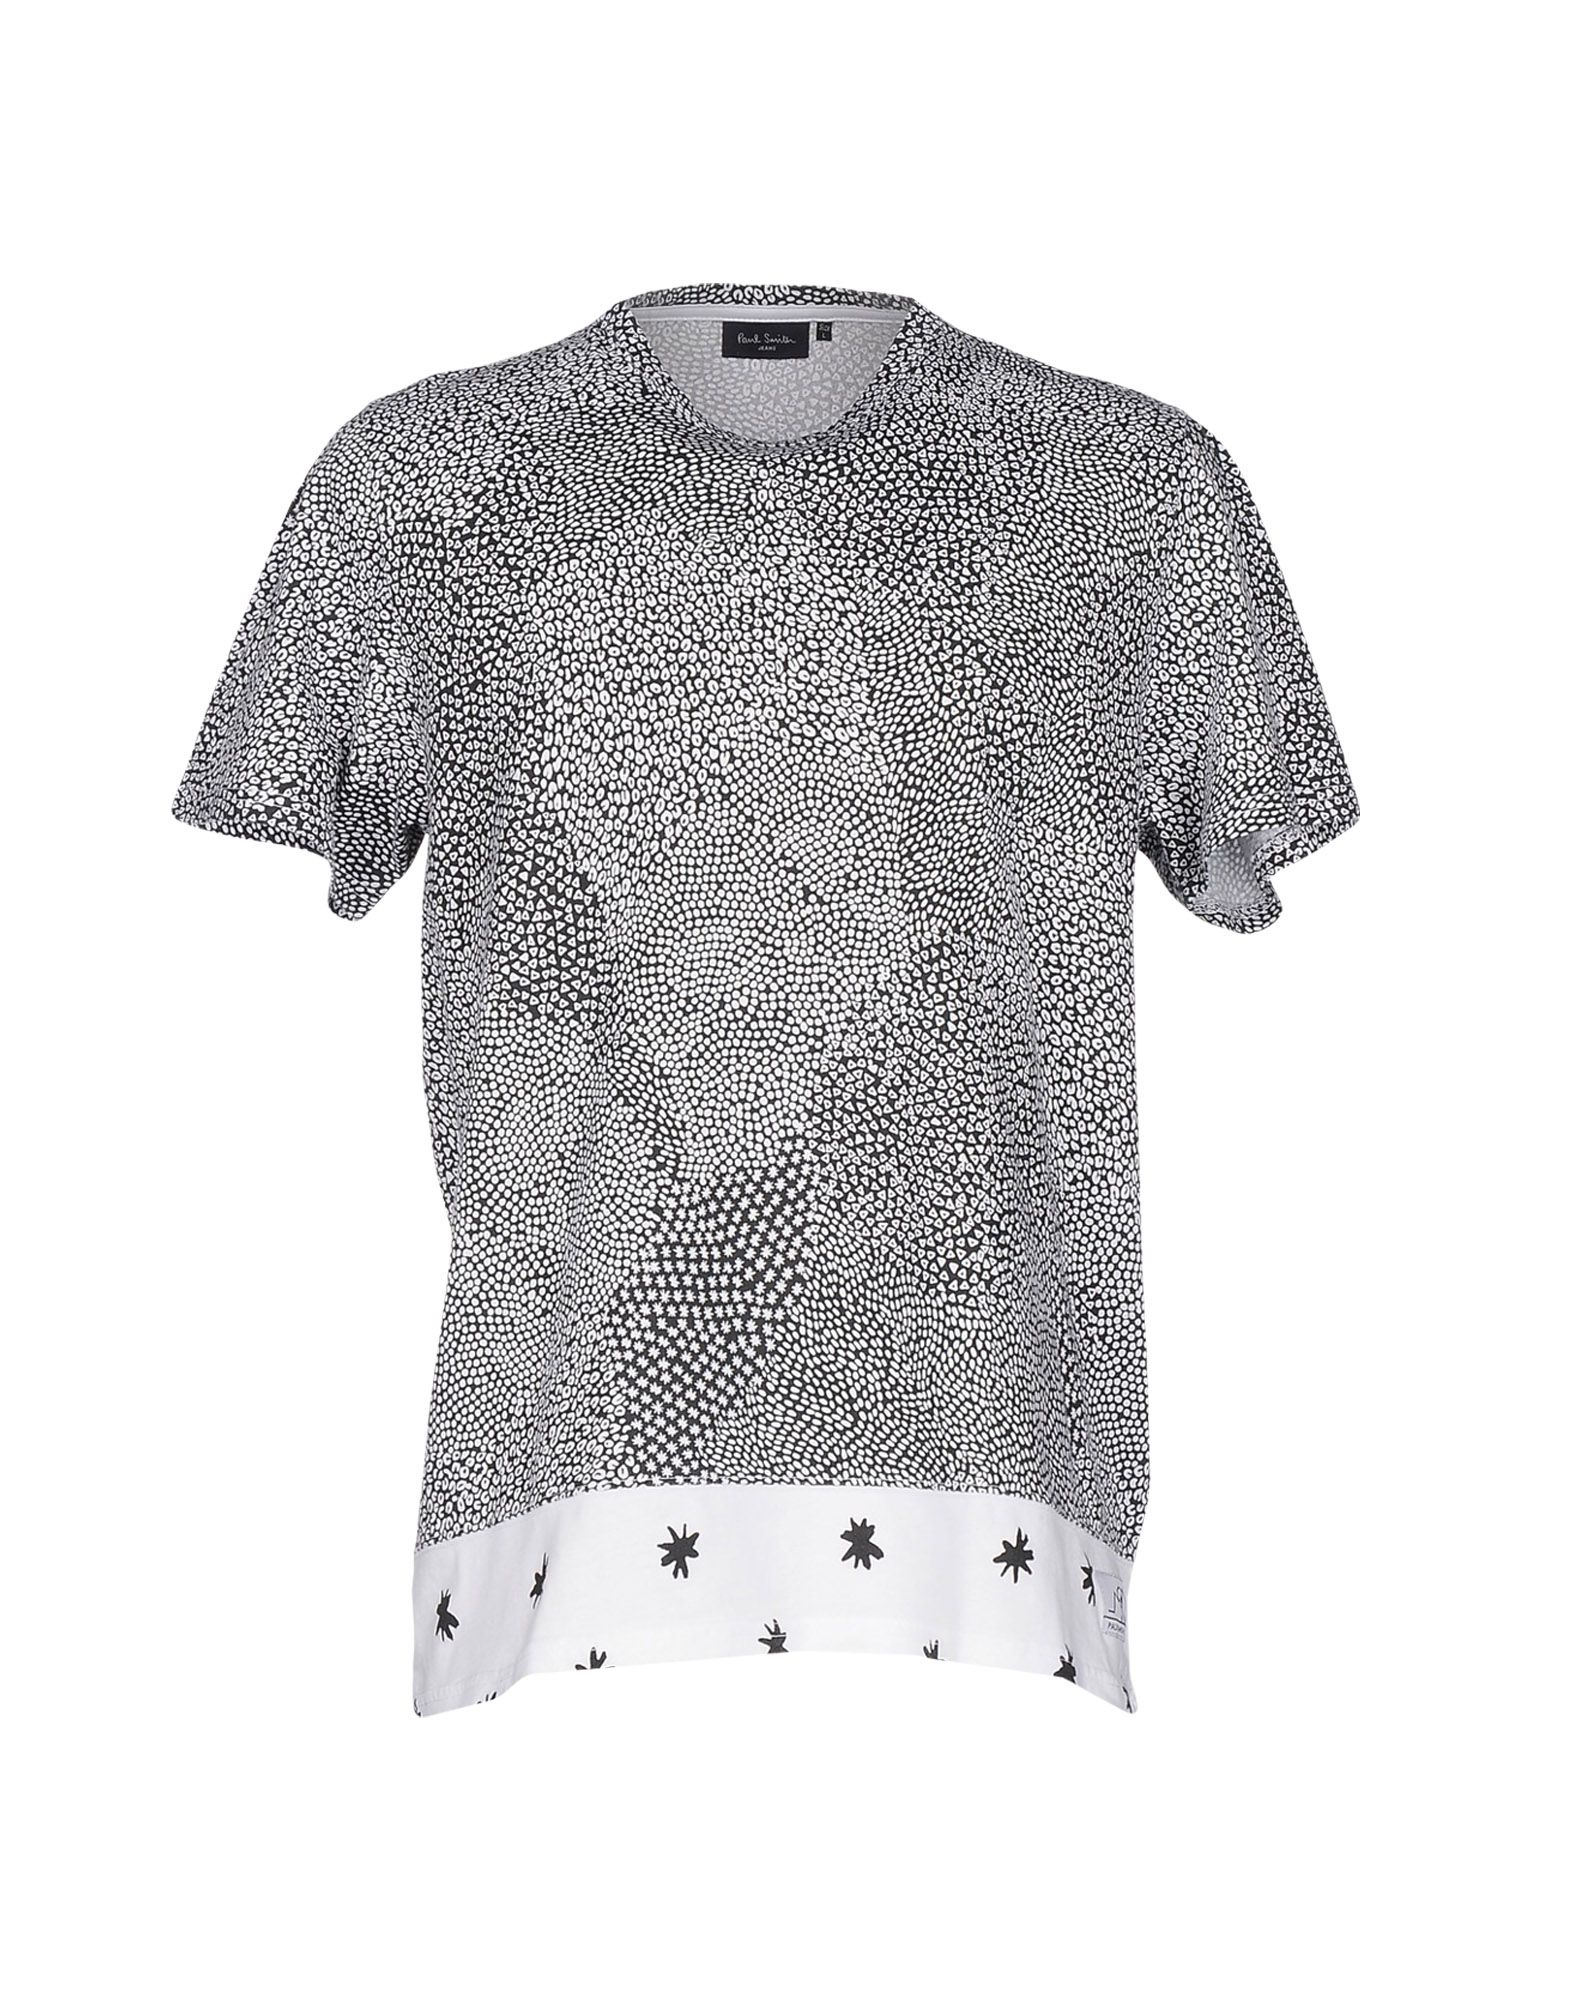 PAUL SMITH JEANS T-shirts